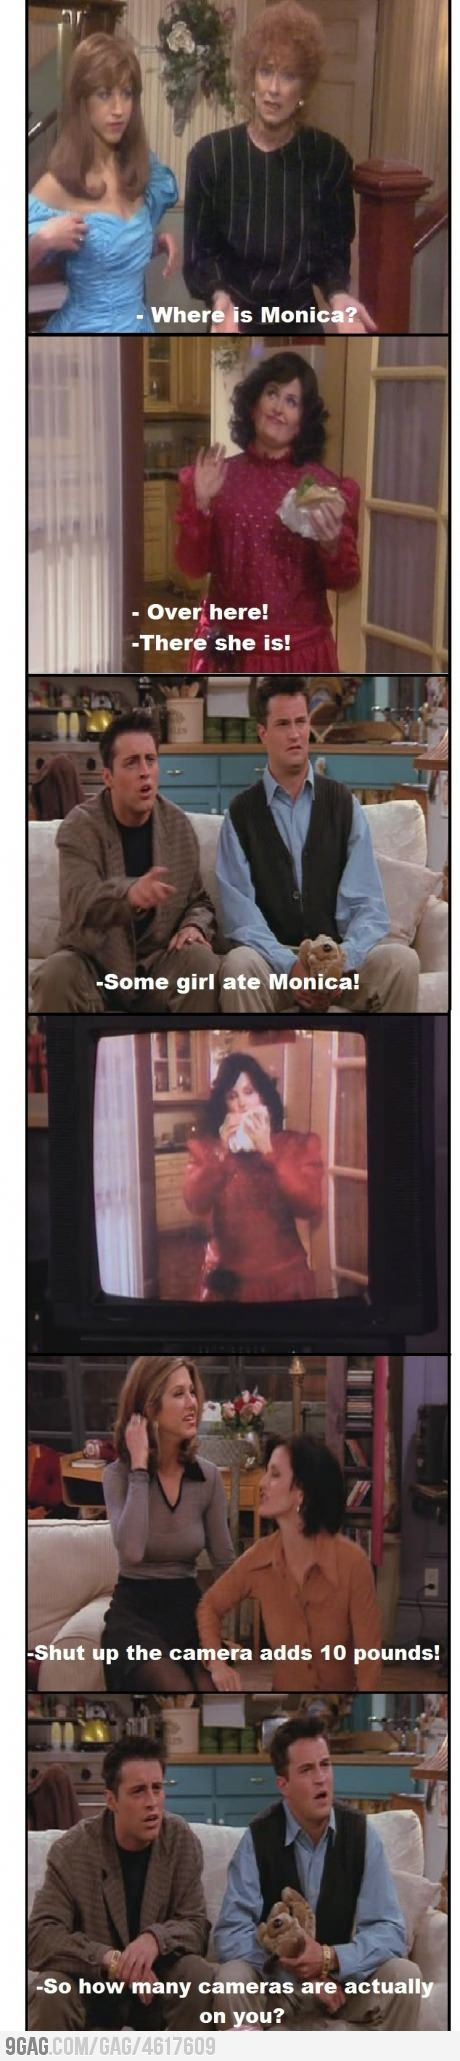 Favorite show of all time